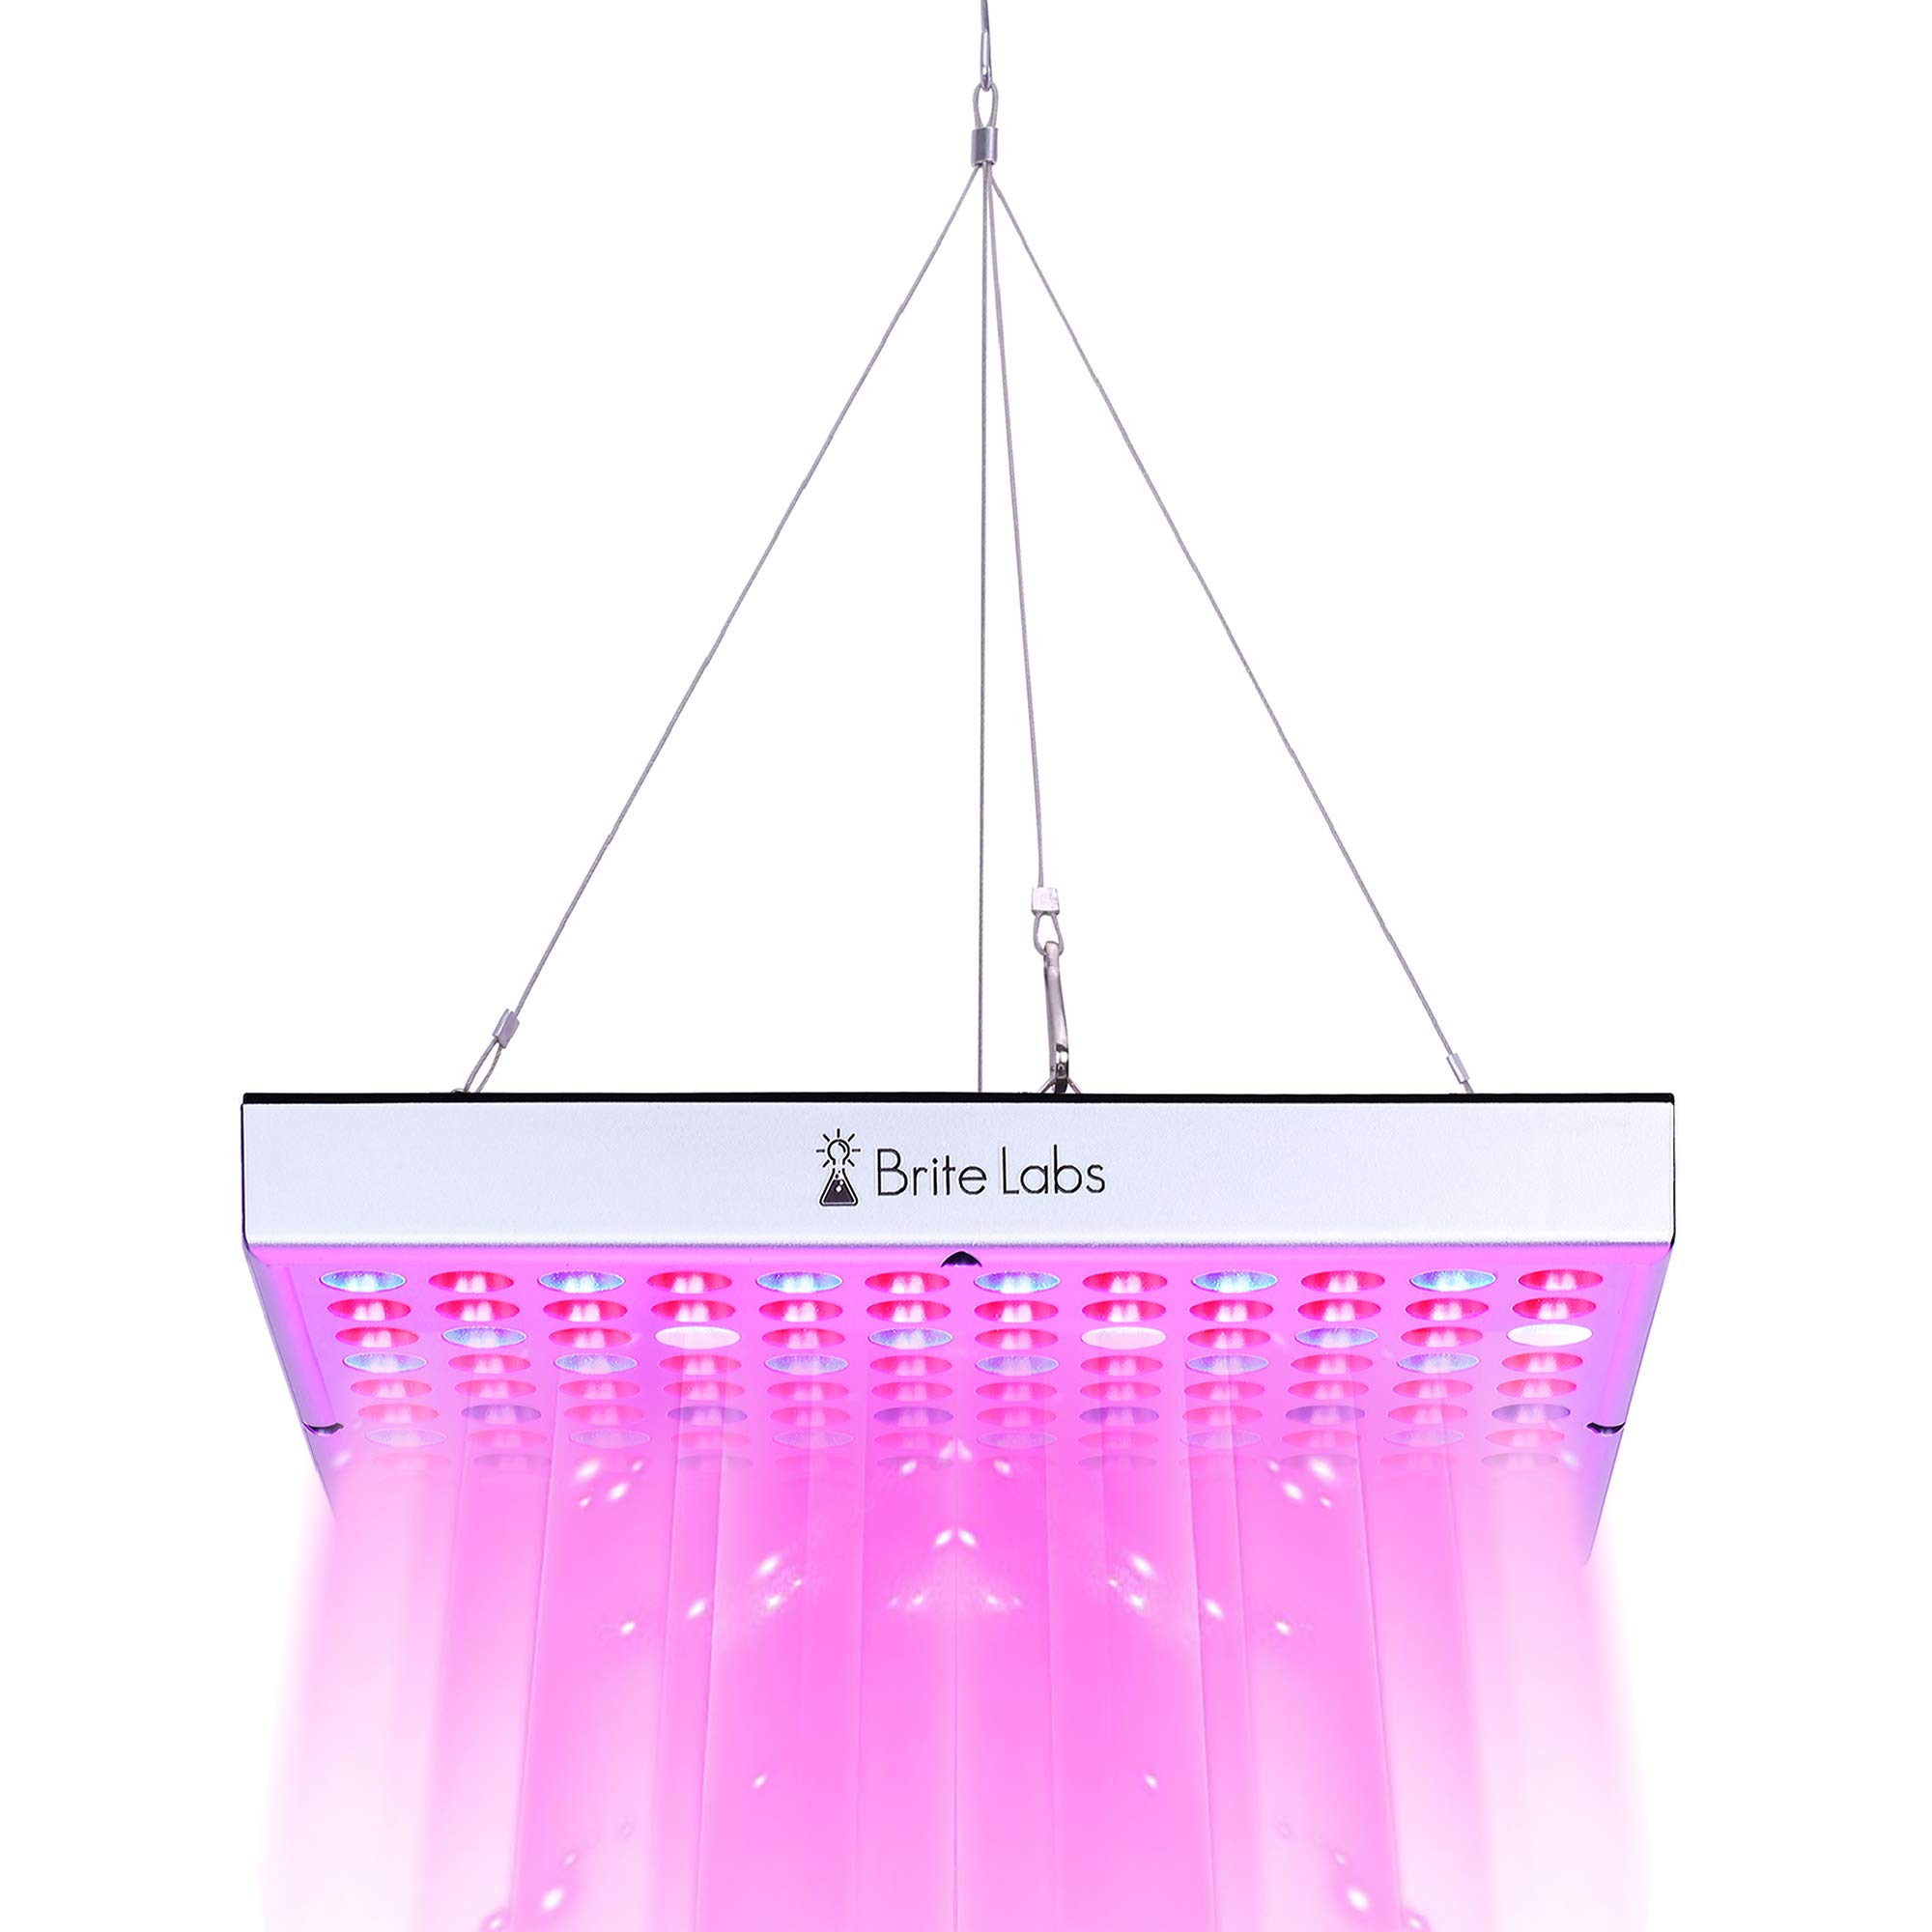 Brite Labs LED Grow Lights for Indoor Plants, 45W Full Spectrum Bulbs, Hanging Plant Grow Light Panel for Seedlings and Seed Starting, LED Growing Lamp Hanging Kit Fixtures and Accessories Included by Brite Labs